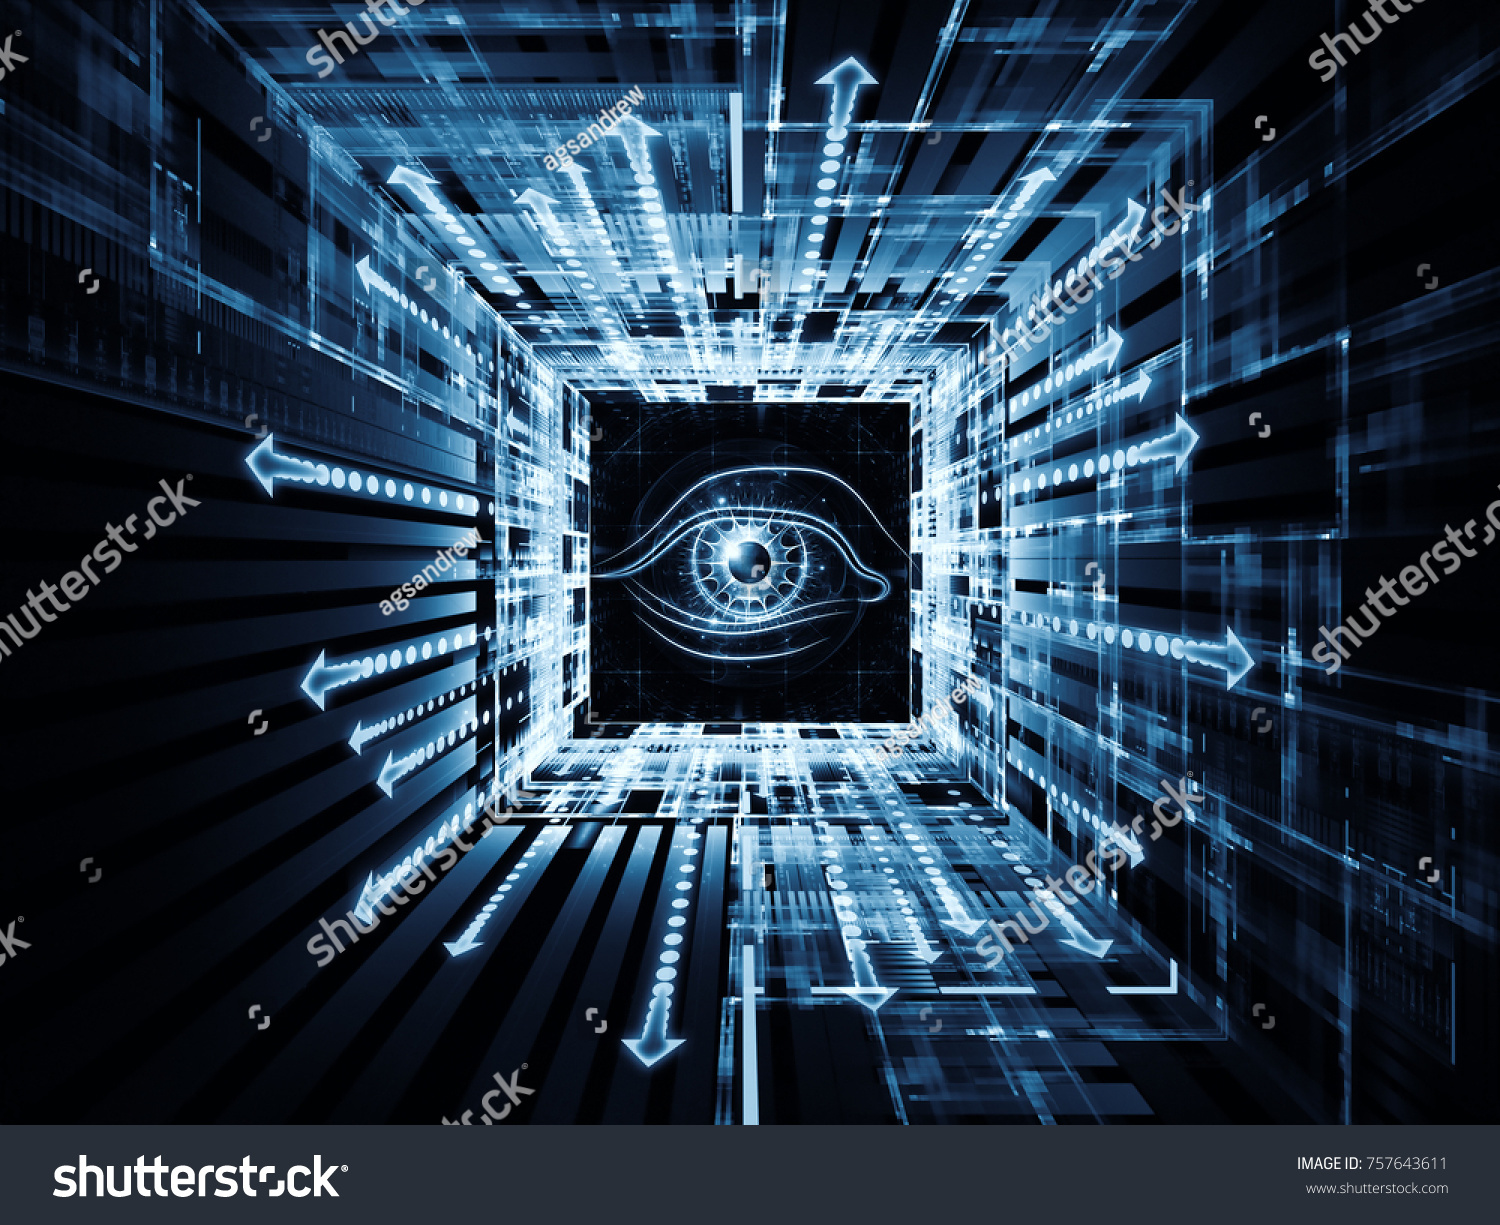 Watching you series 3d illustration symbol stock illustration 3d illustration of symbol of an eye motion trails and fractal biocorpaavc Images